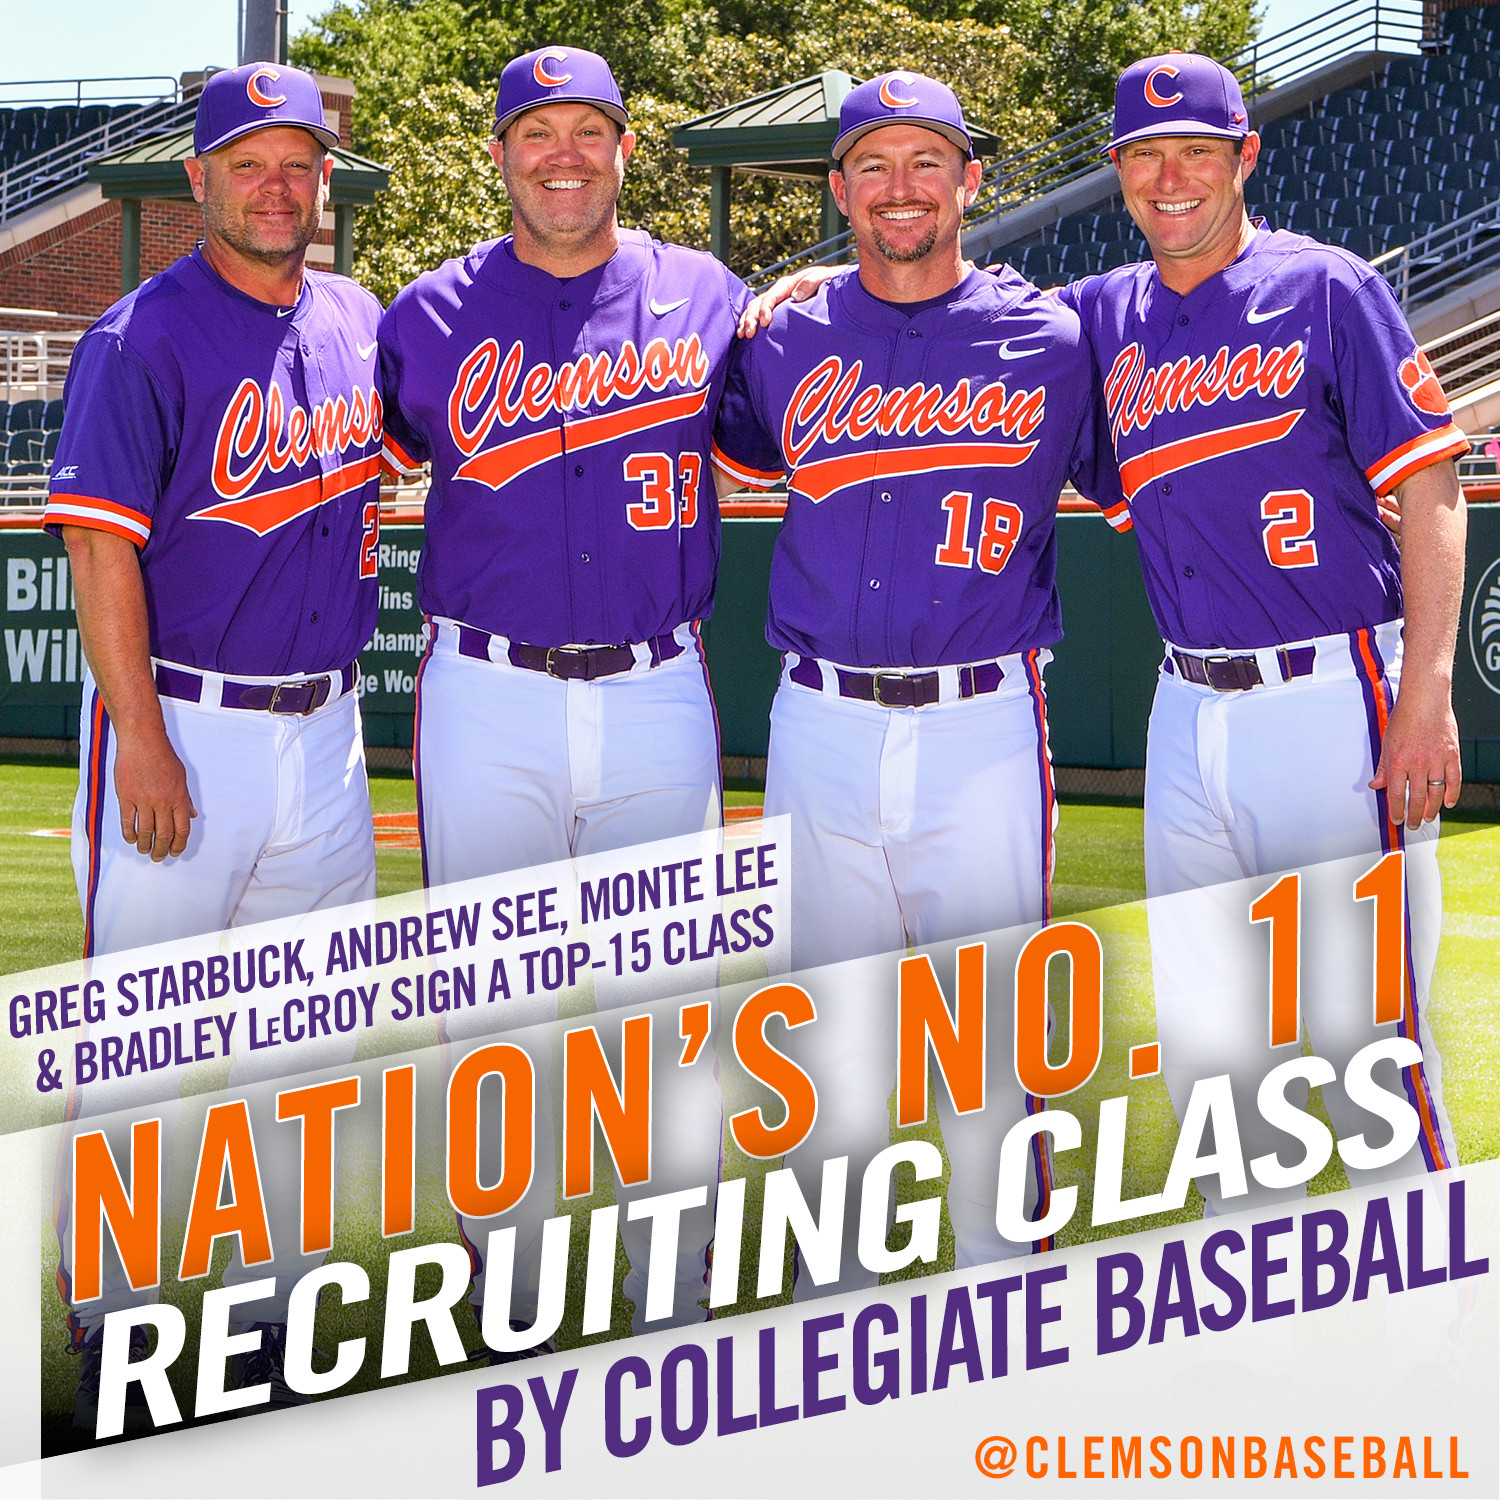 Recruiting Class Rated No. 11